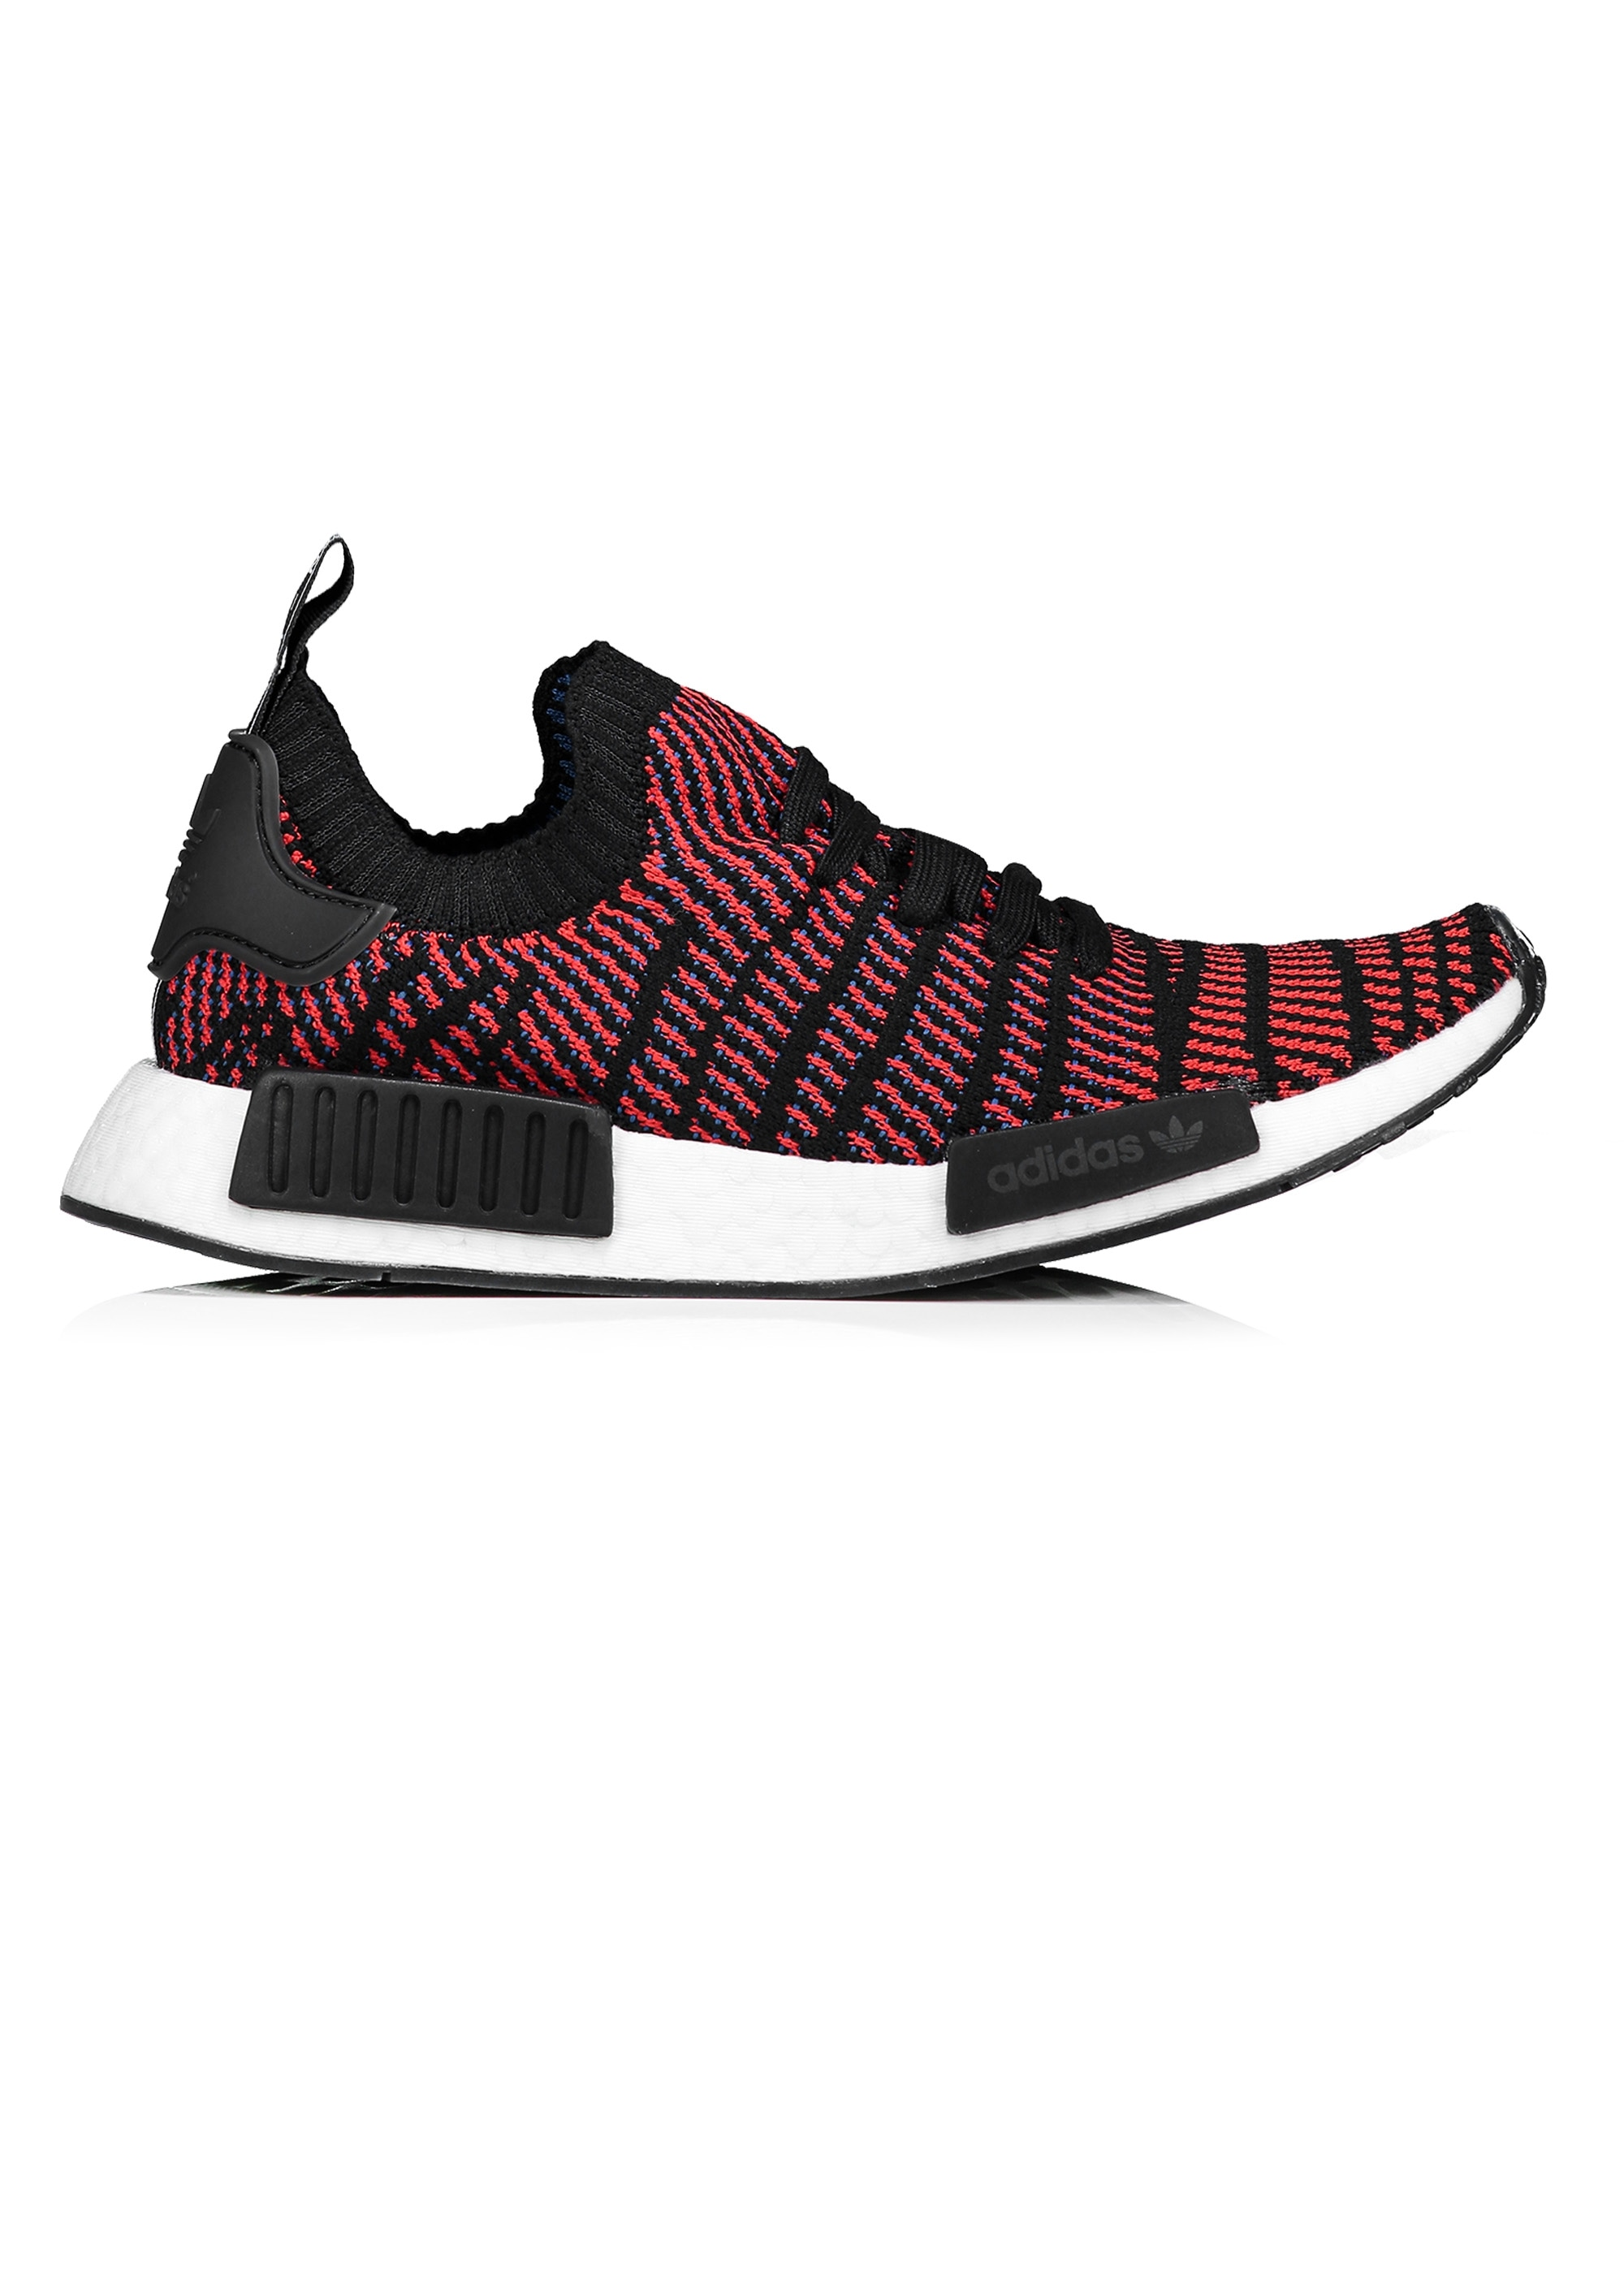 best sneakers 577ee faea0 adidas Originals Footwear NMD R1 STLT PK - Black / Red